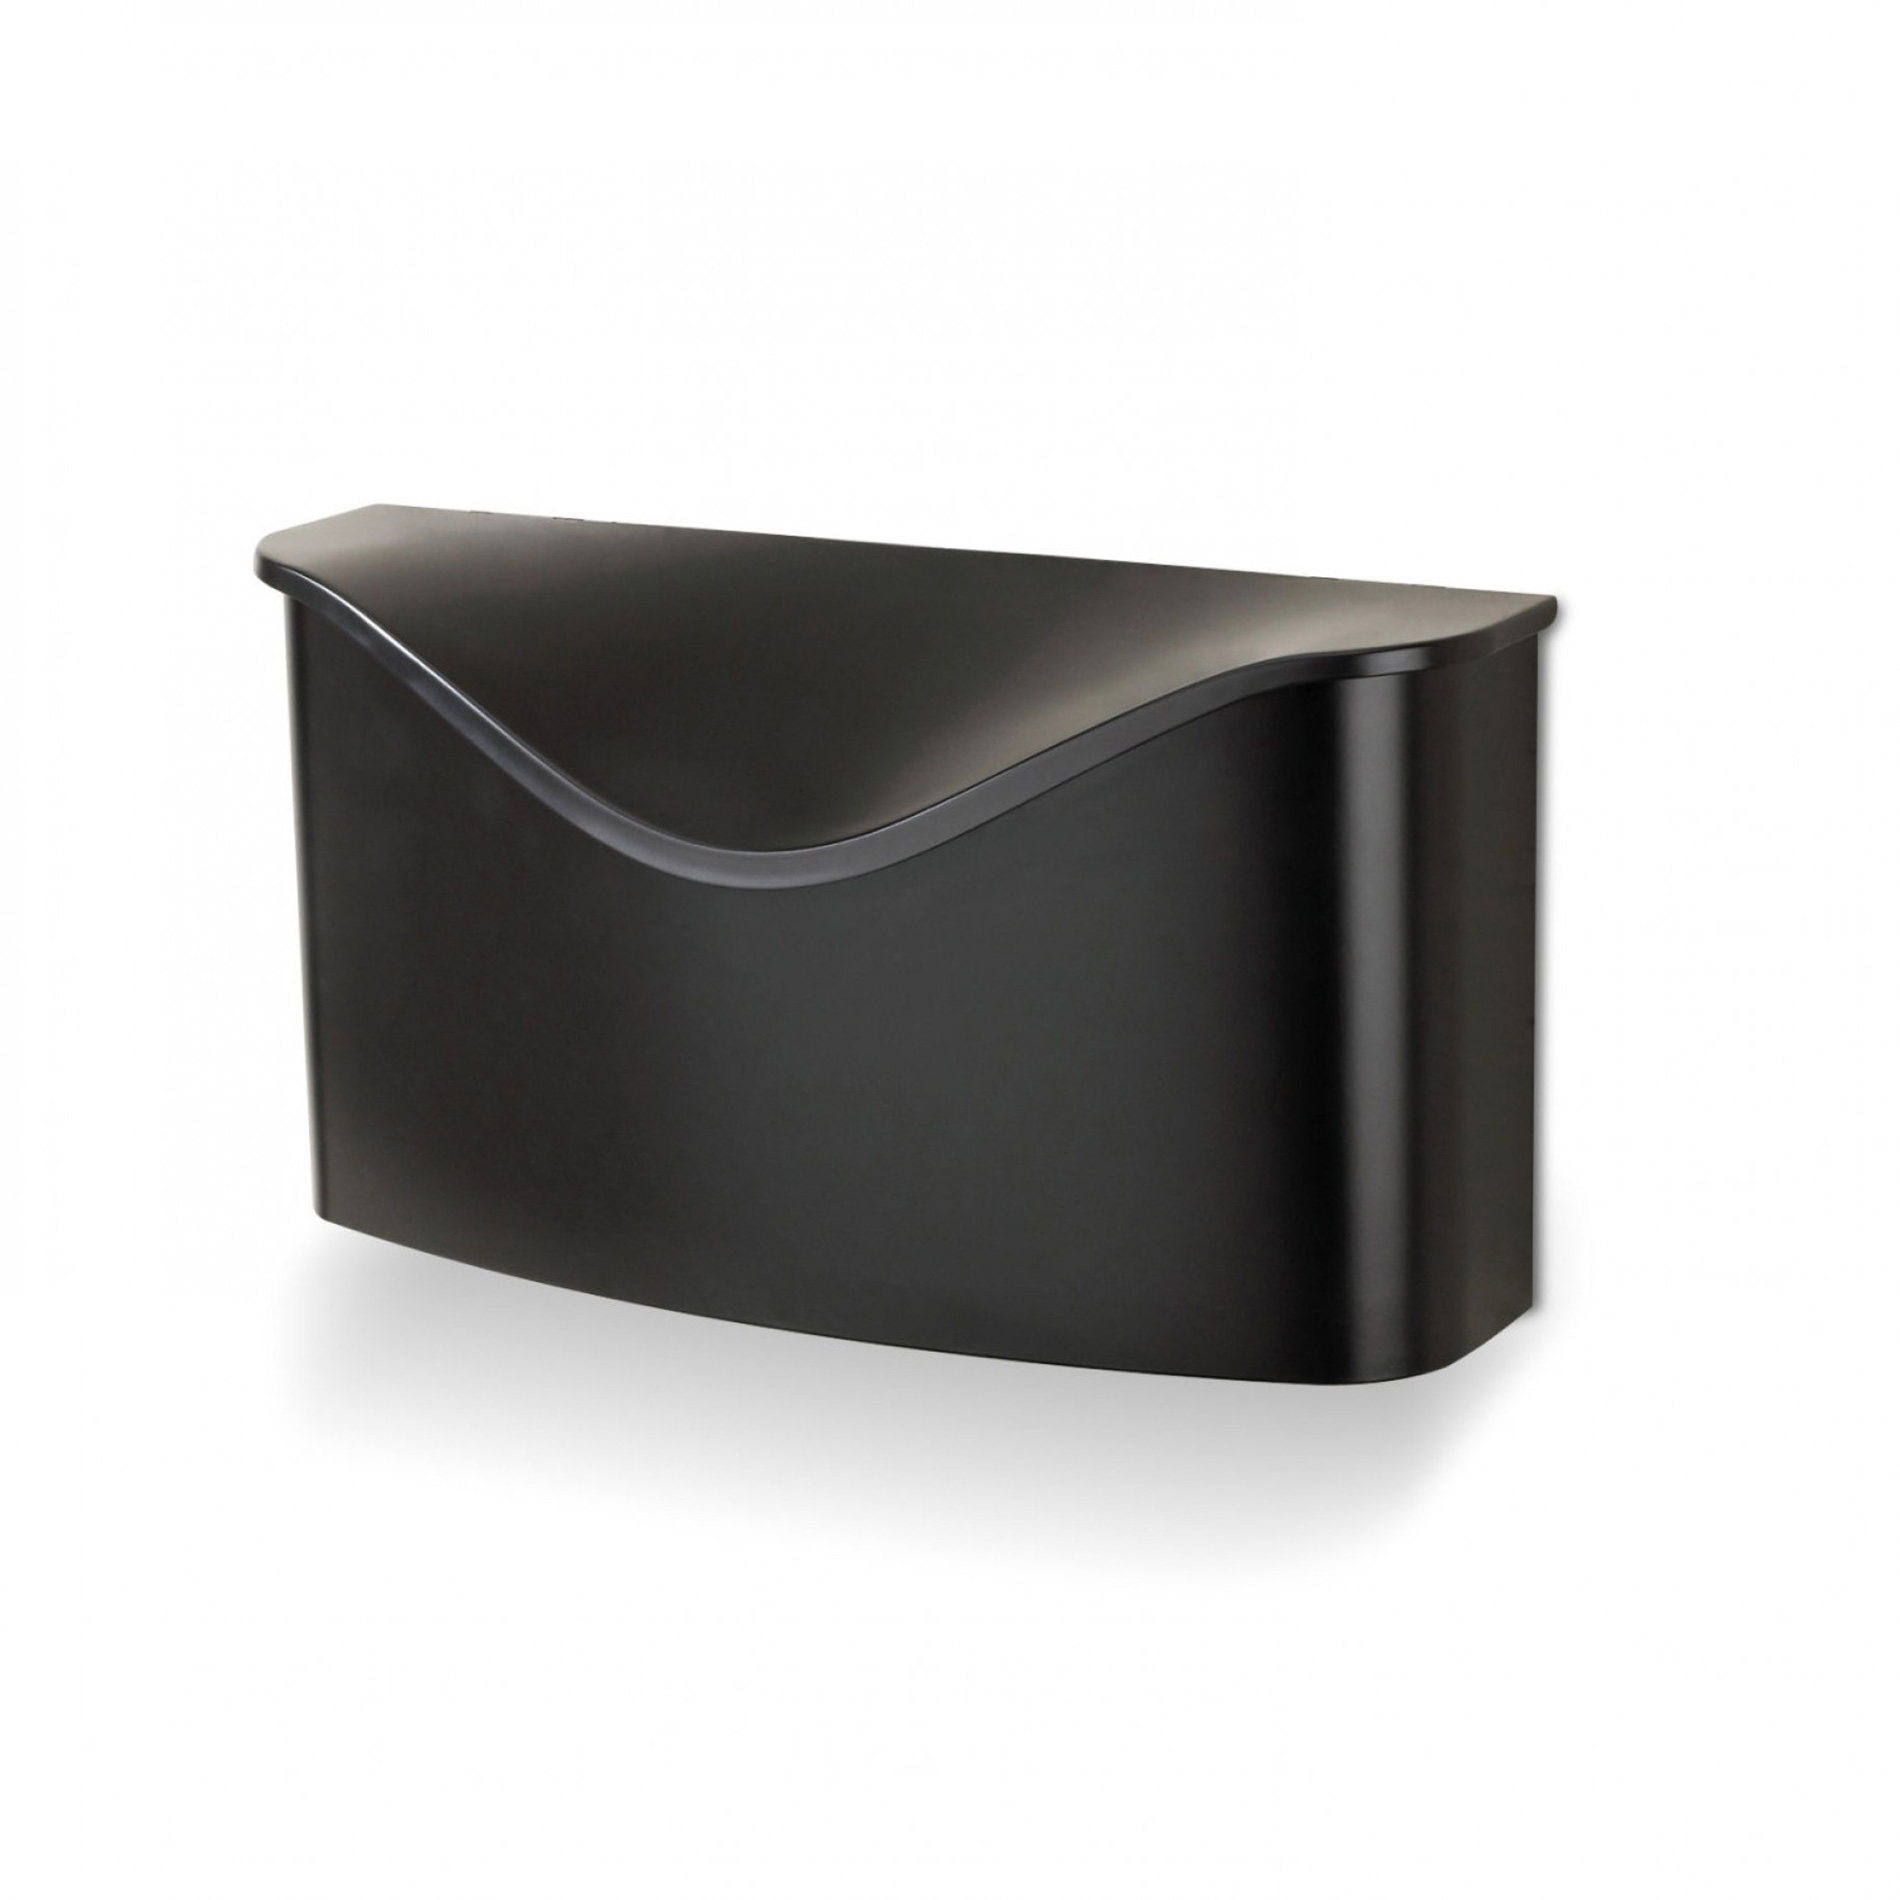 Postino Mailbox by Matt Carr for Umbra